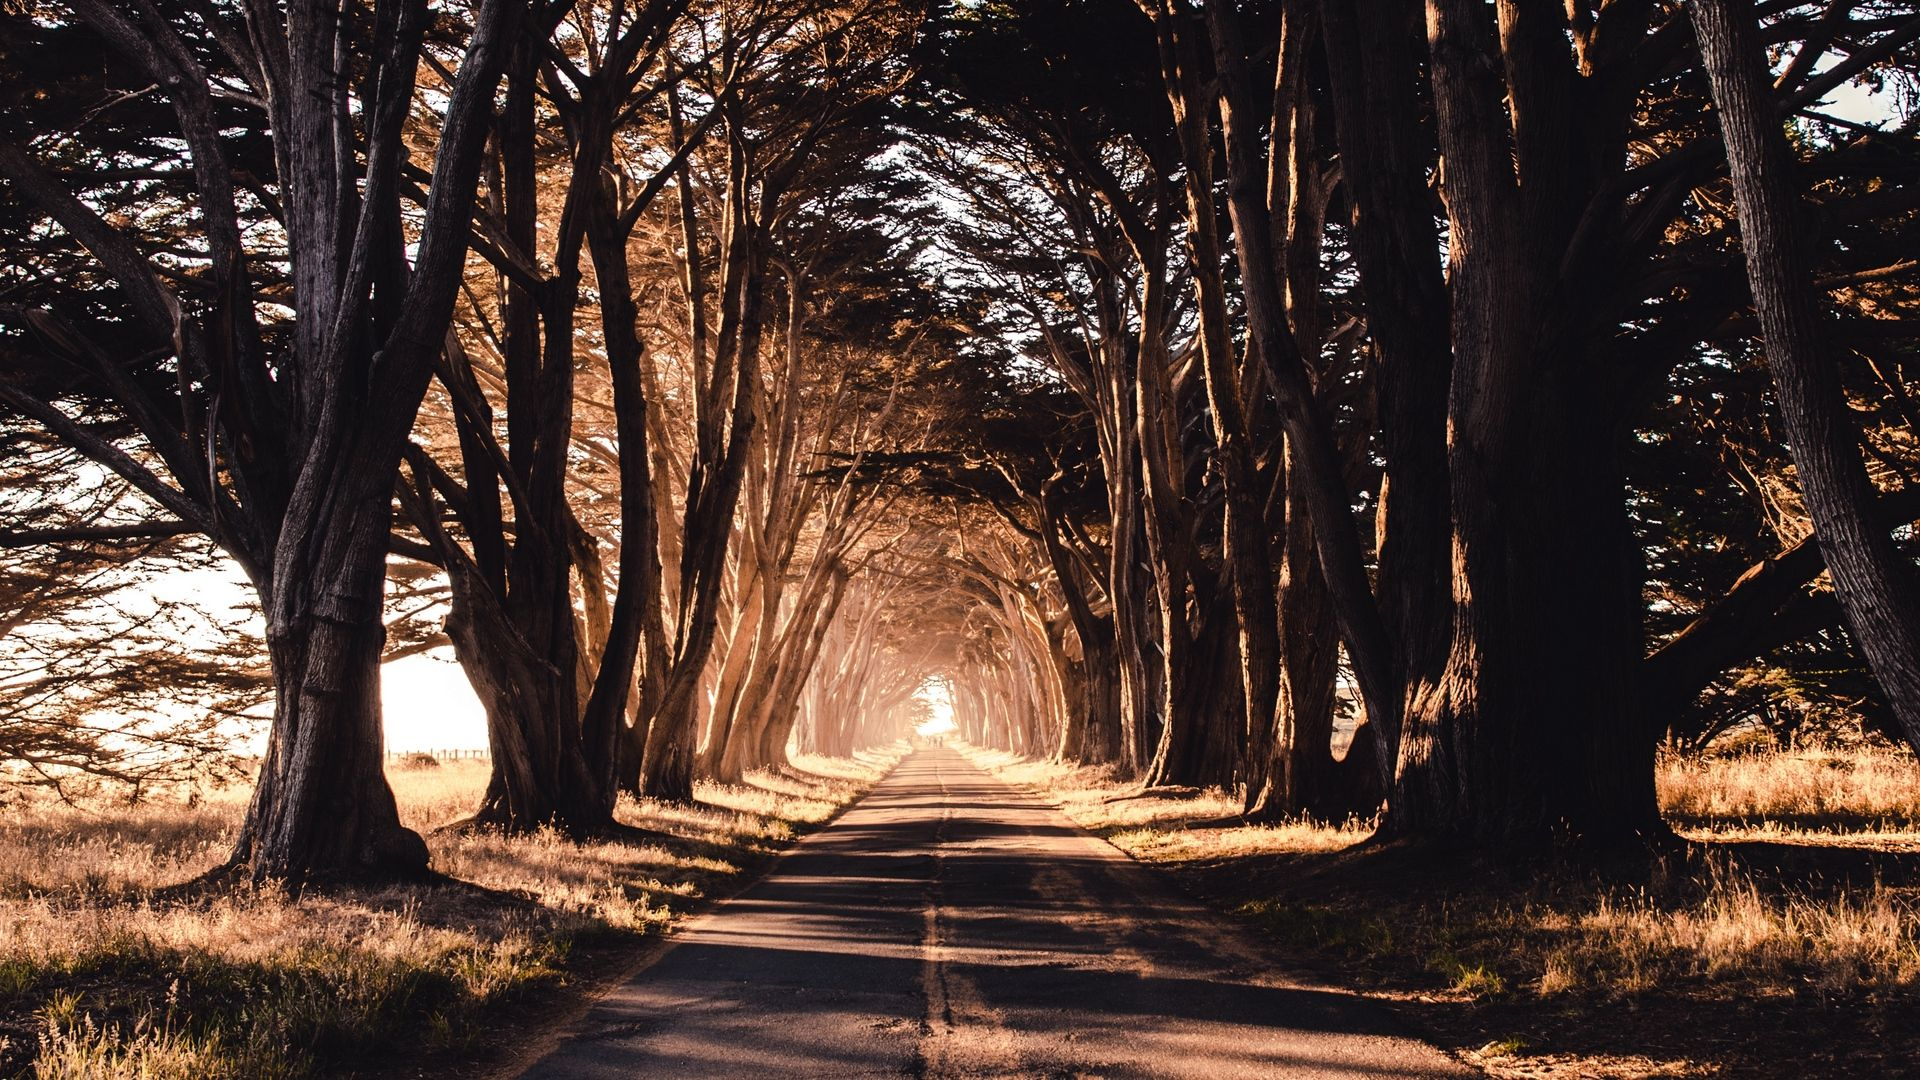 Download Wallpaper 1920x1080 Road Trees Shadow Full Hd Hdtv Fhd 1080p Hd Background Nature Wallpaper Backgrounds Desktop Background